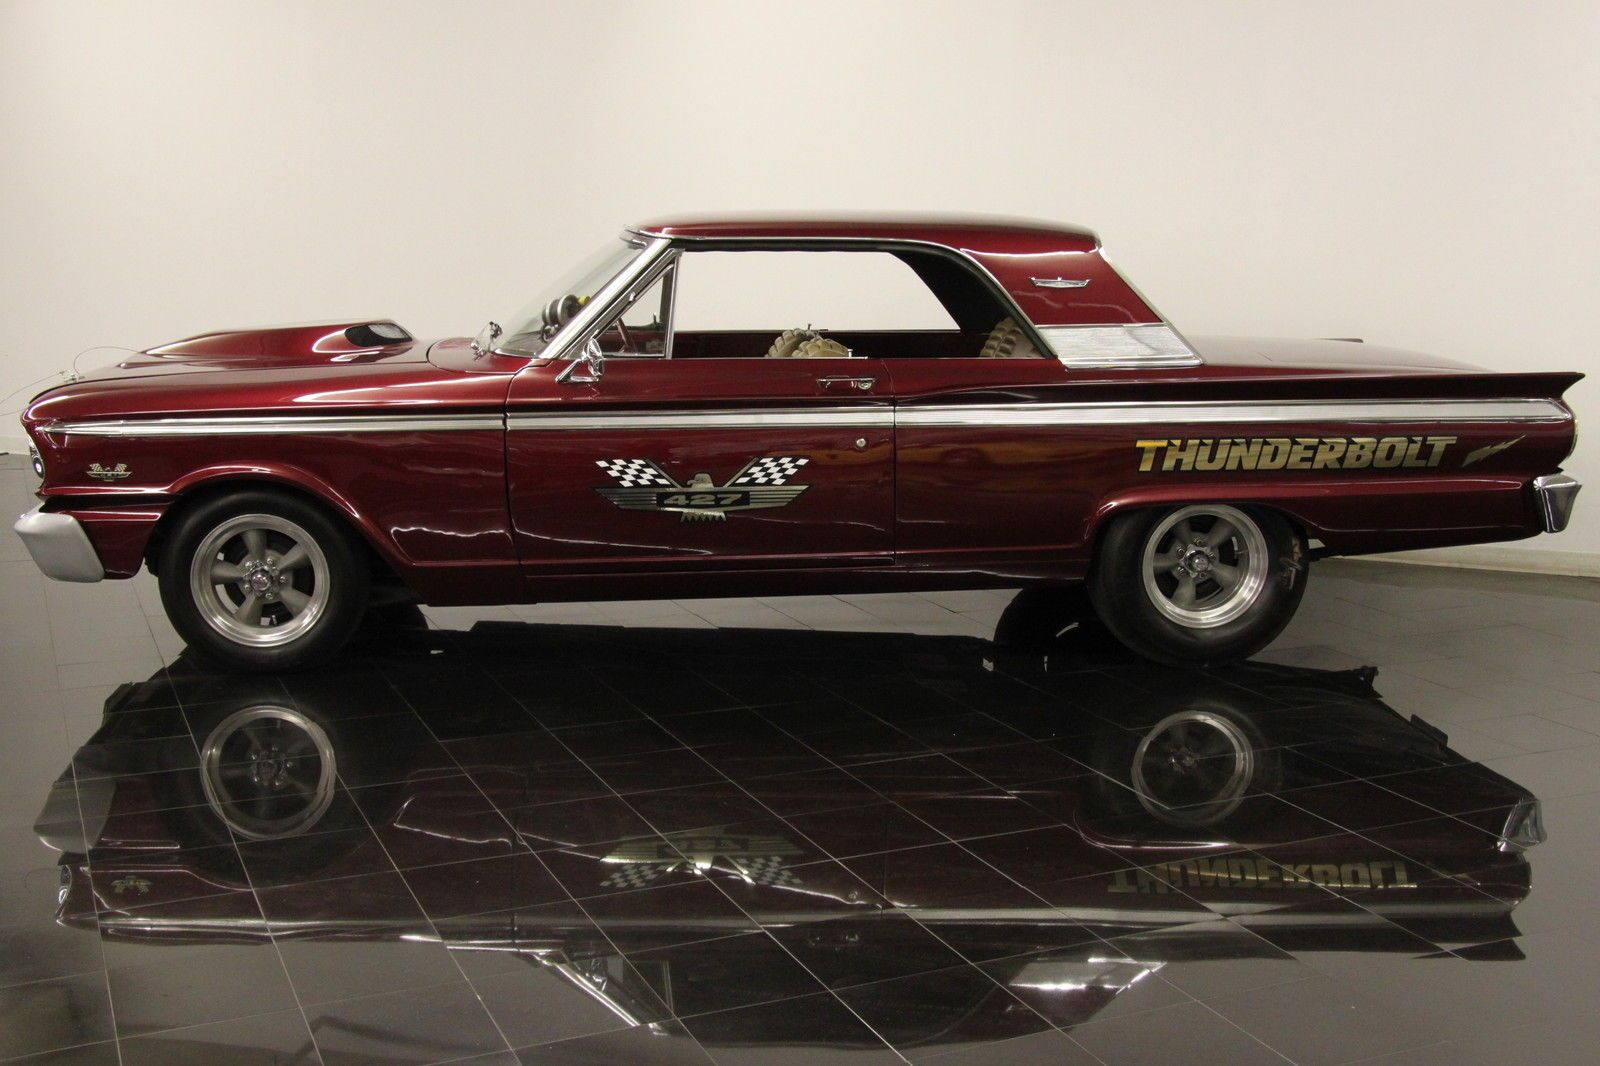 Details about 1964 Ford Fairlane Thunderbolt Tribute | cars